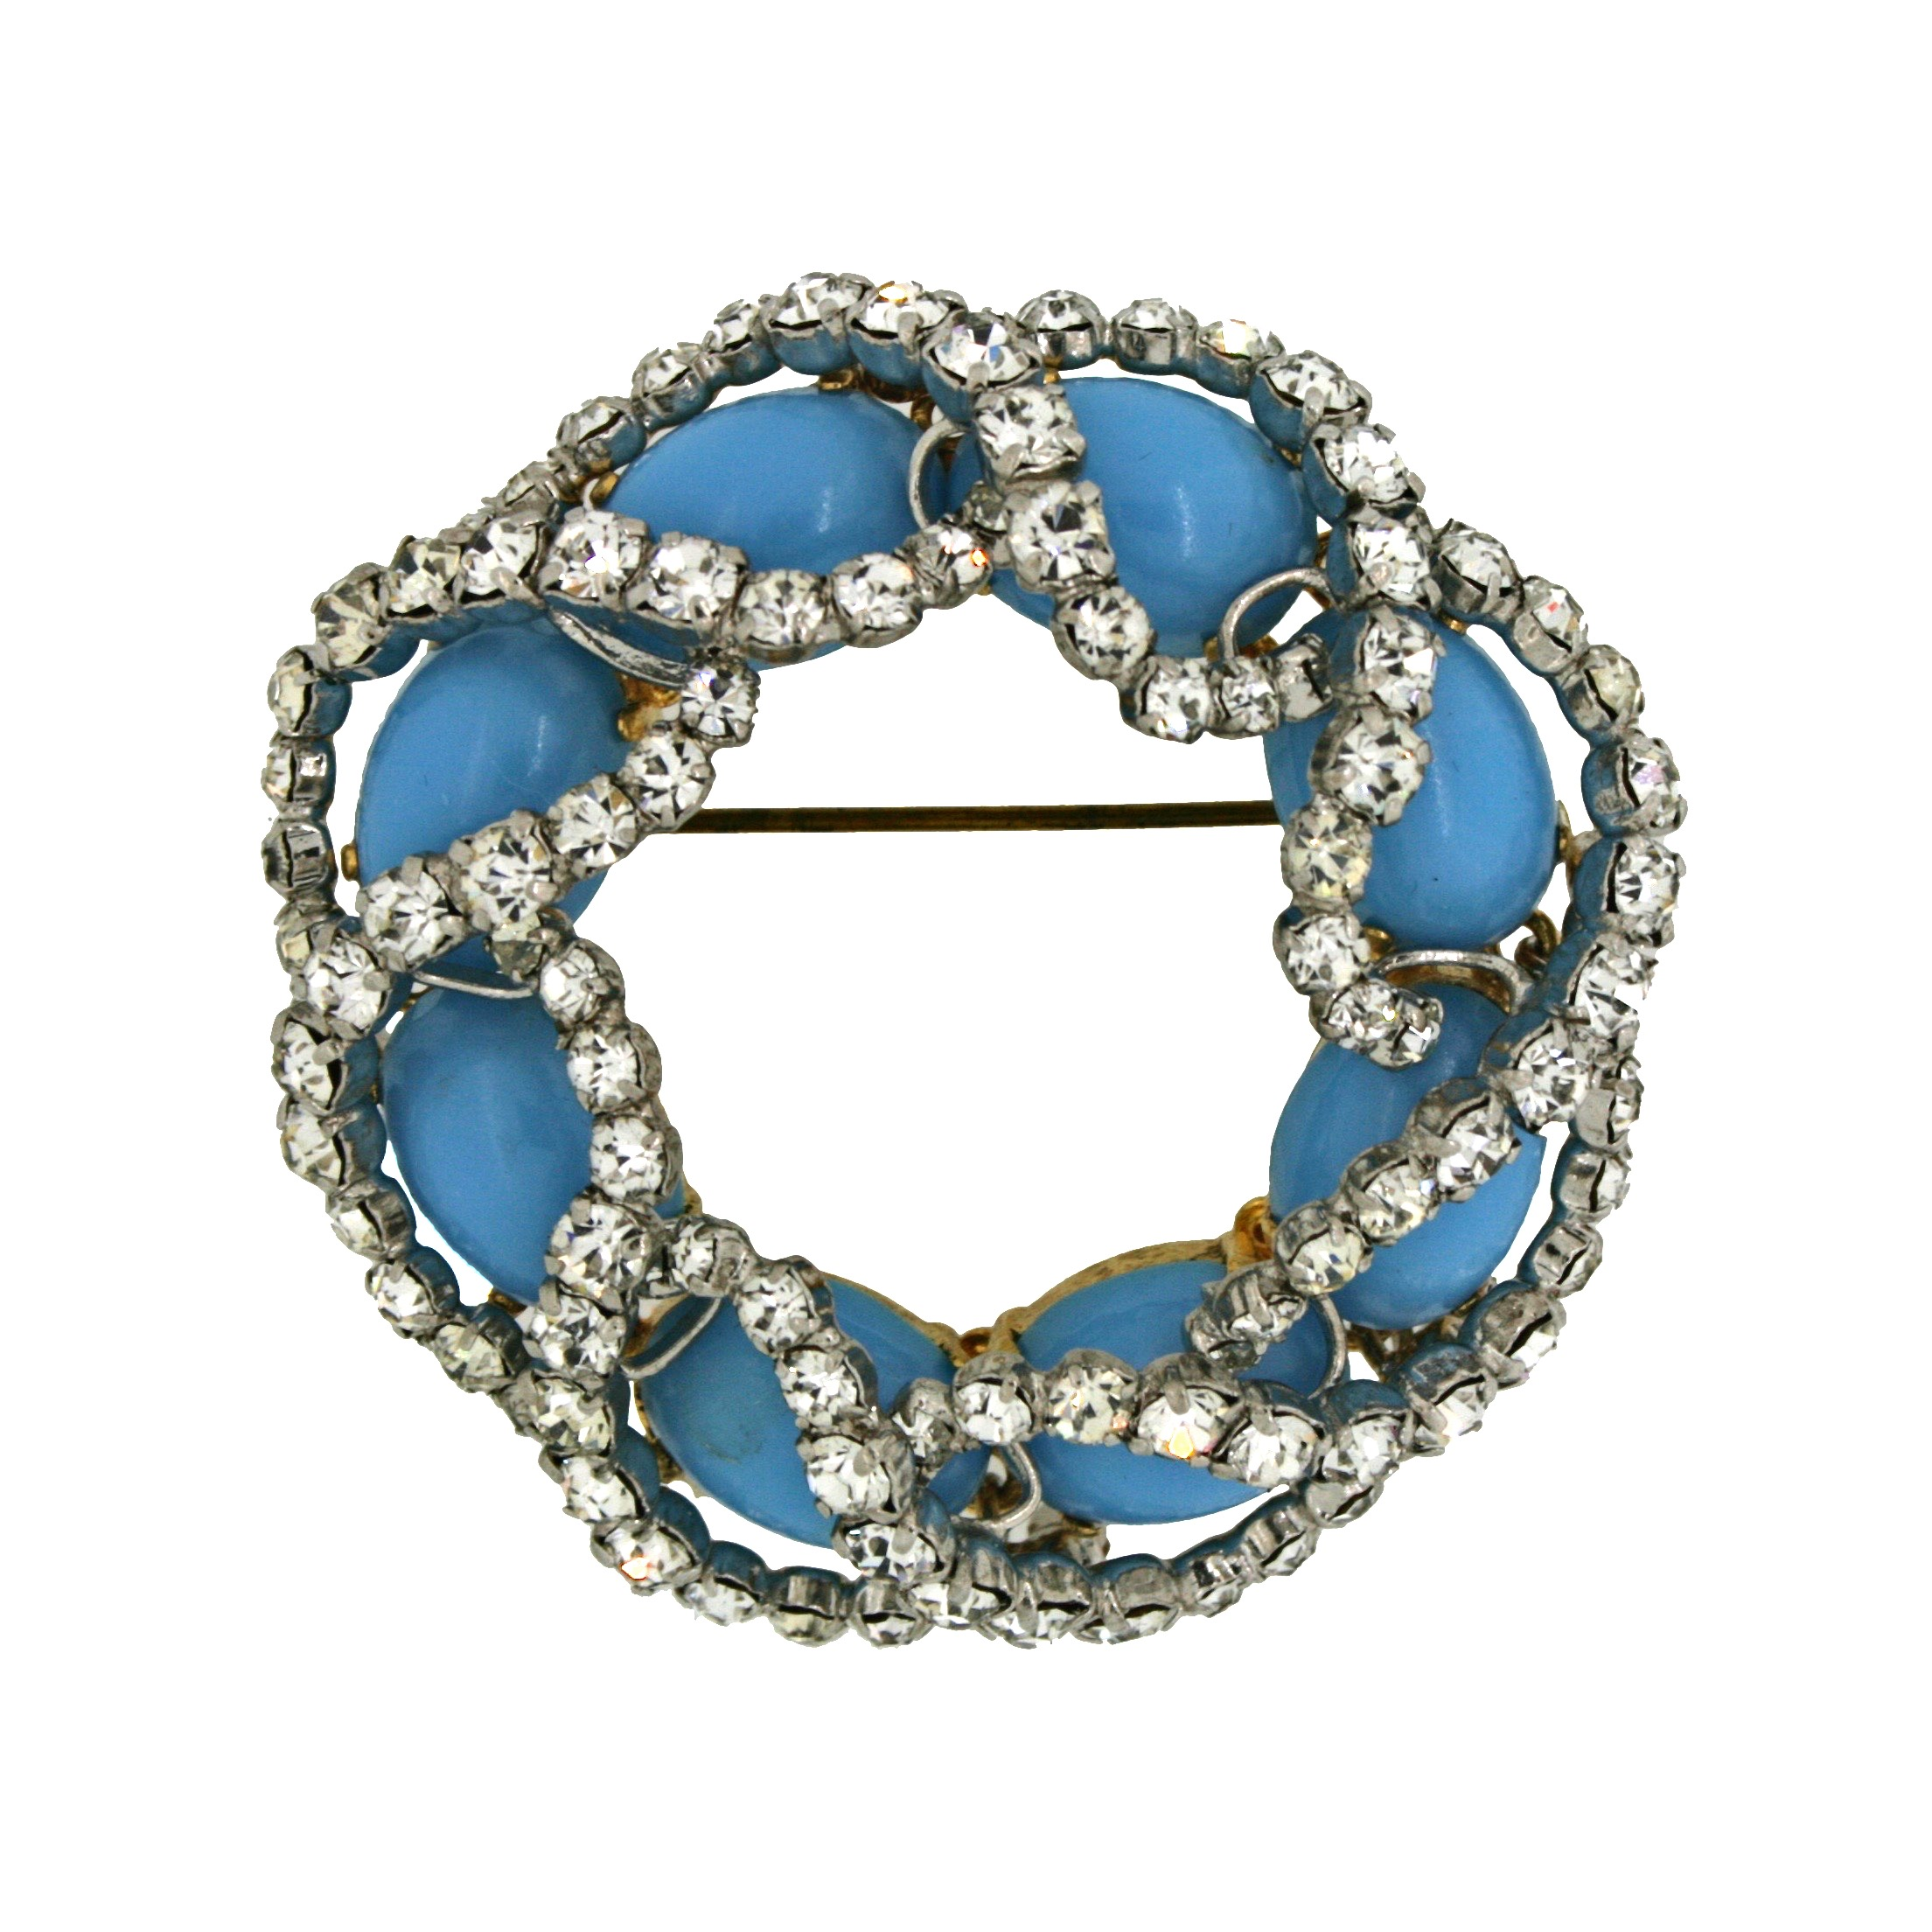 Gemma Redmond Vintage: Faux turquoise and rhinestone brooch on gold tone metal by Christian Dior, 1963.